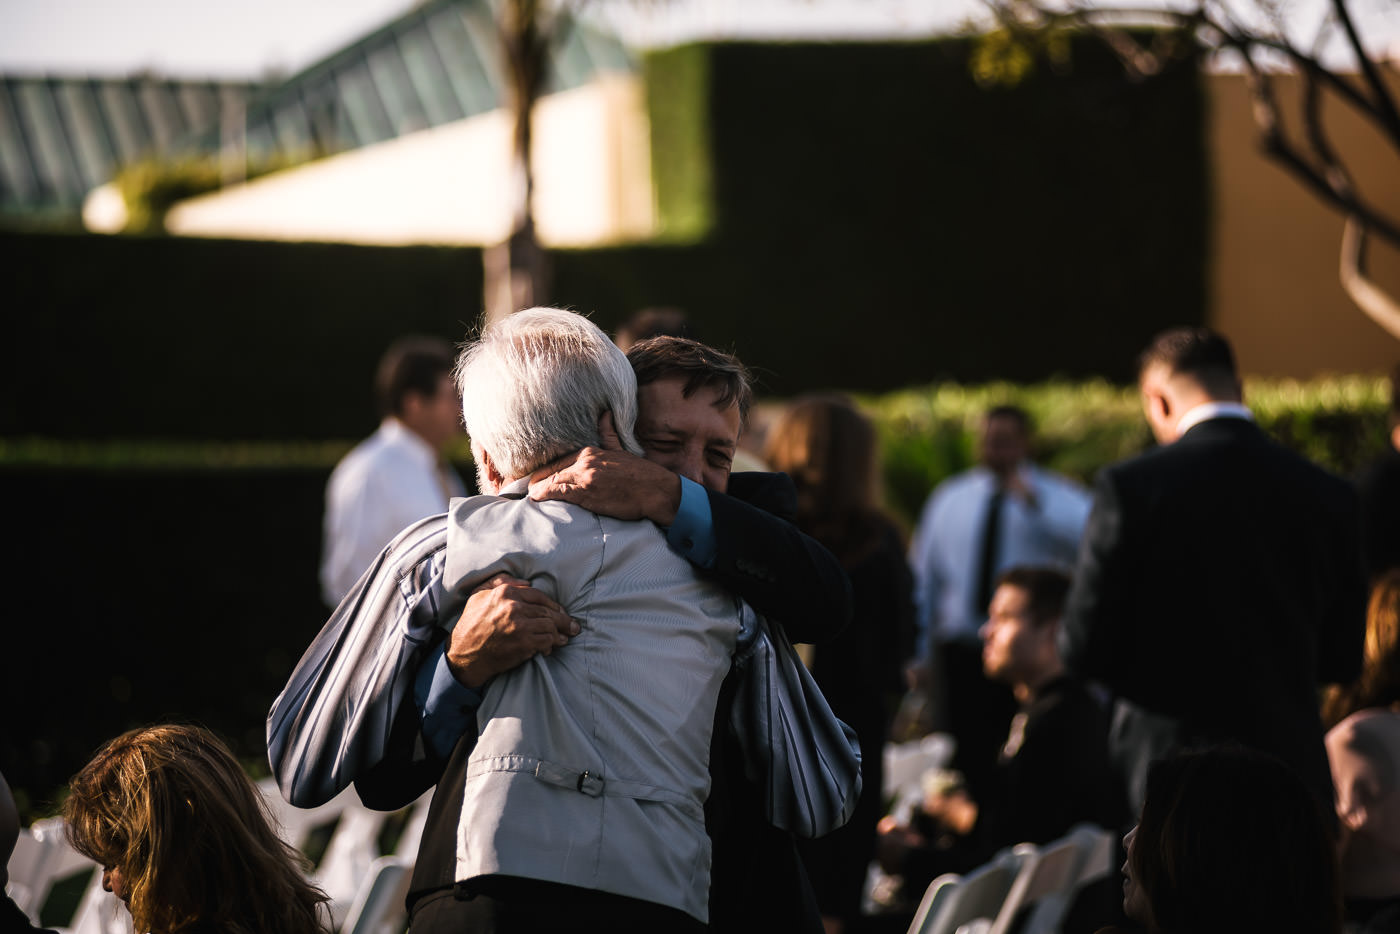 Father of the groom hugs a guest moments before the ceremony starts.